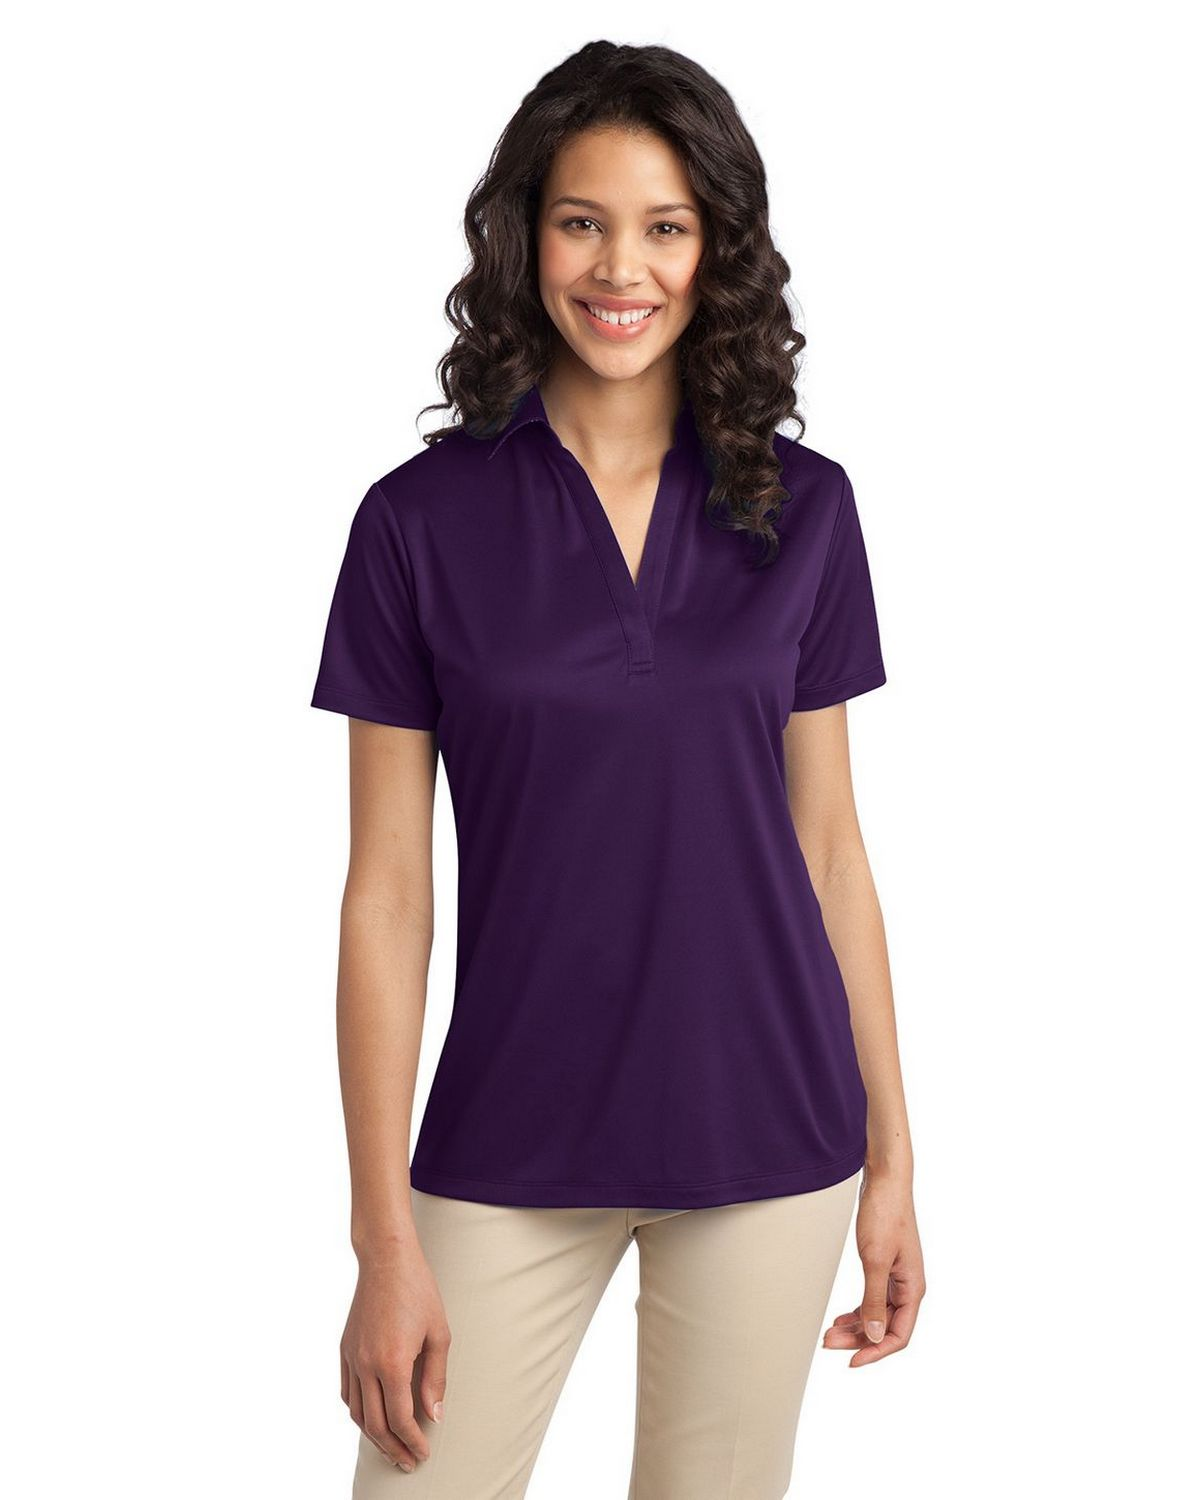 Port Authority L540 Women's Silk Touch Performance Polo - Bright Purple - XS #silk